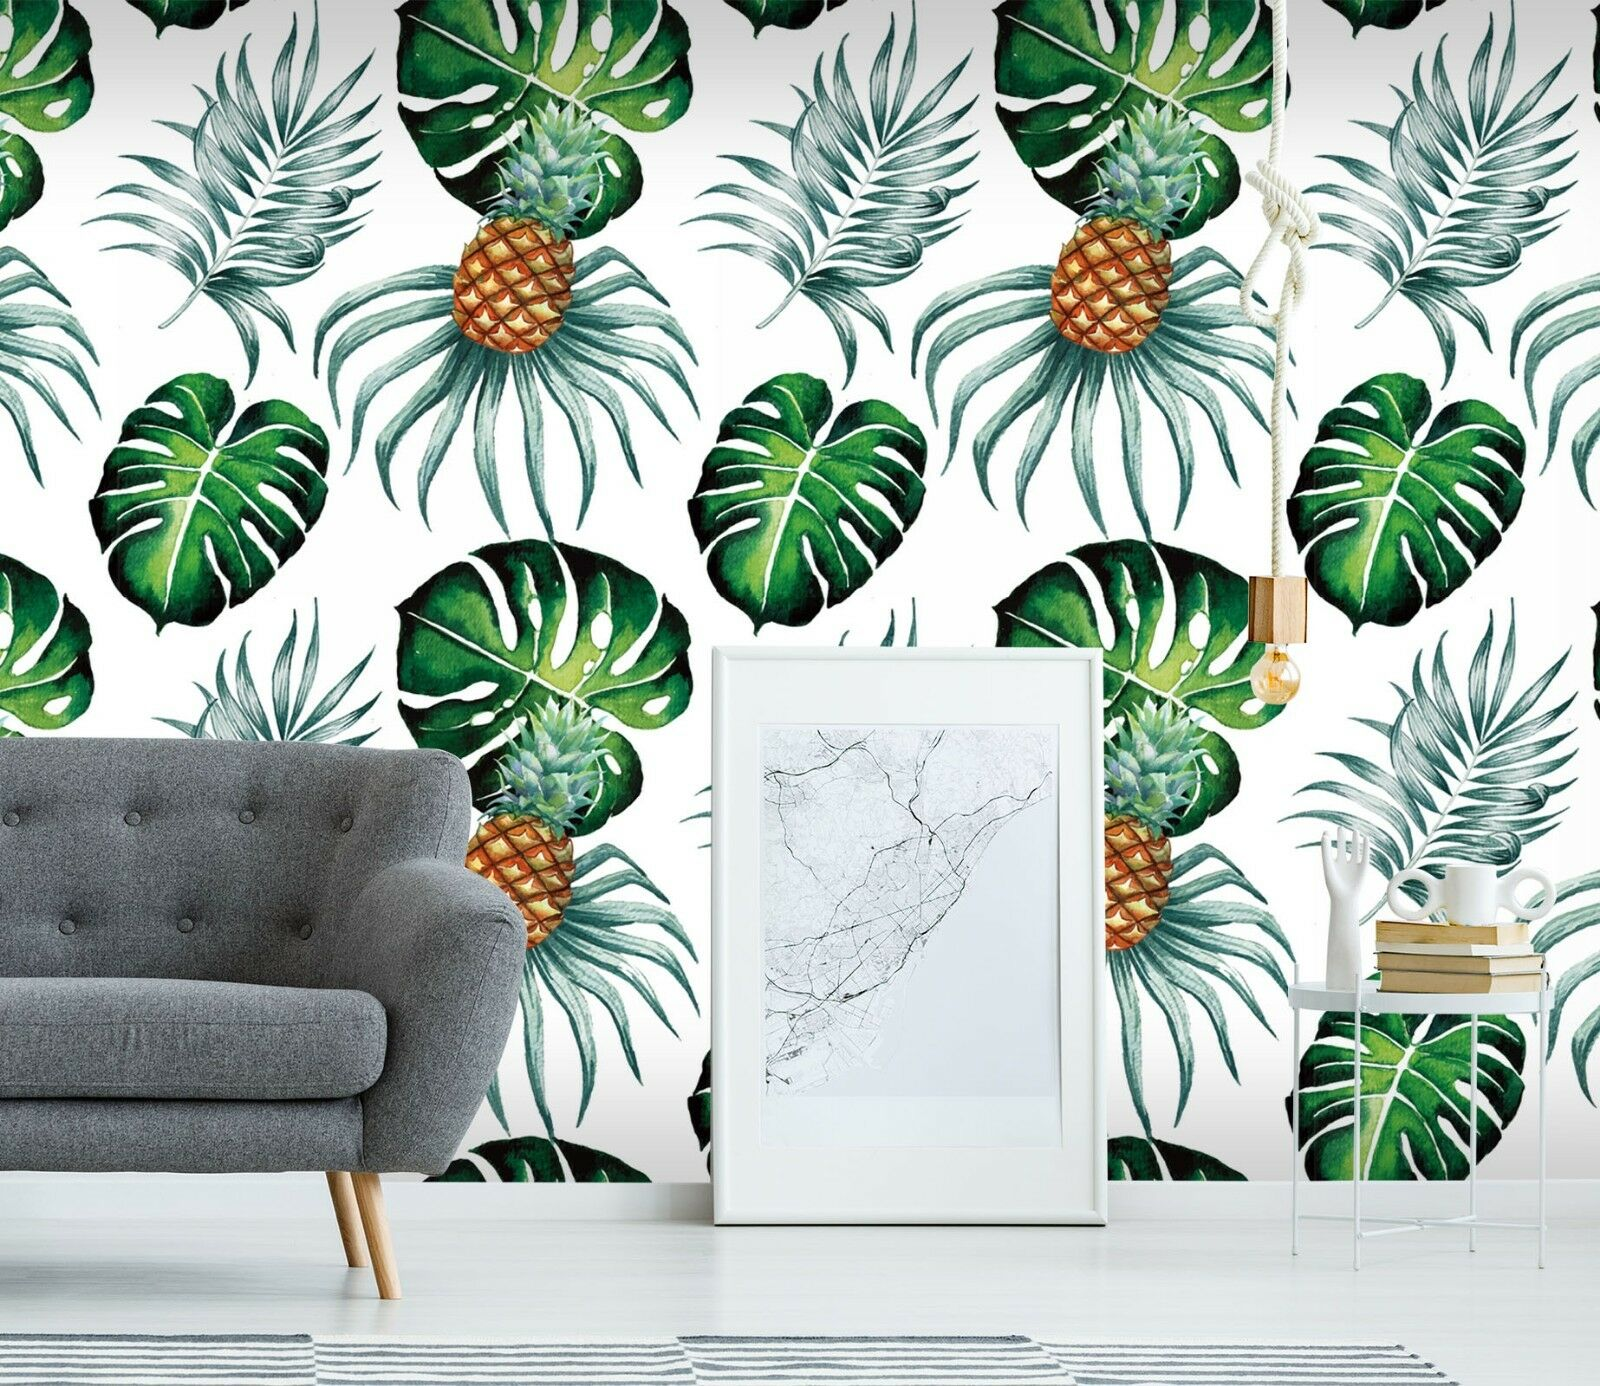 3D Pineapple Leaf 2 Wallpaper Mural Print Wall Indoor Wallpaper Murals UK Summer